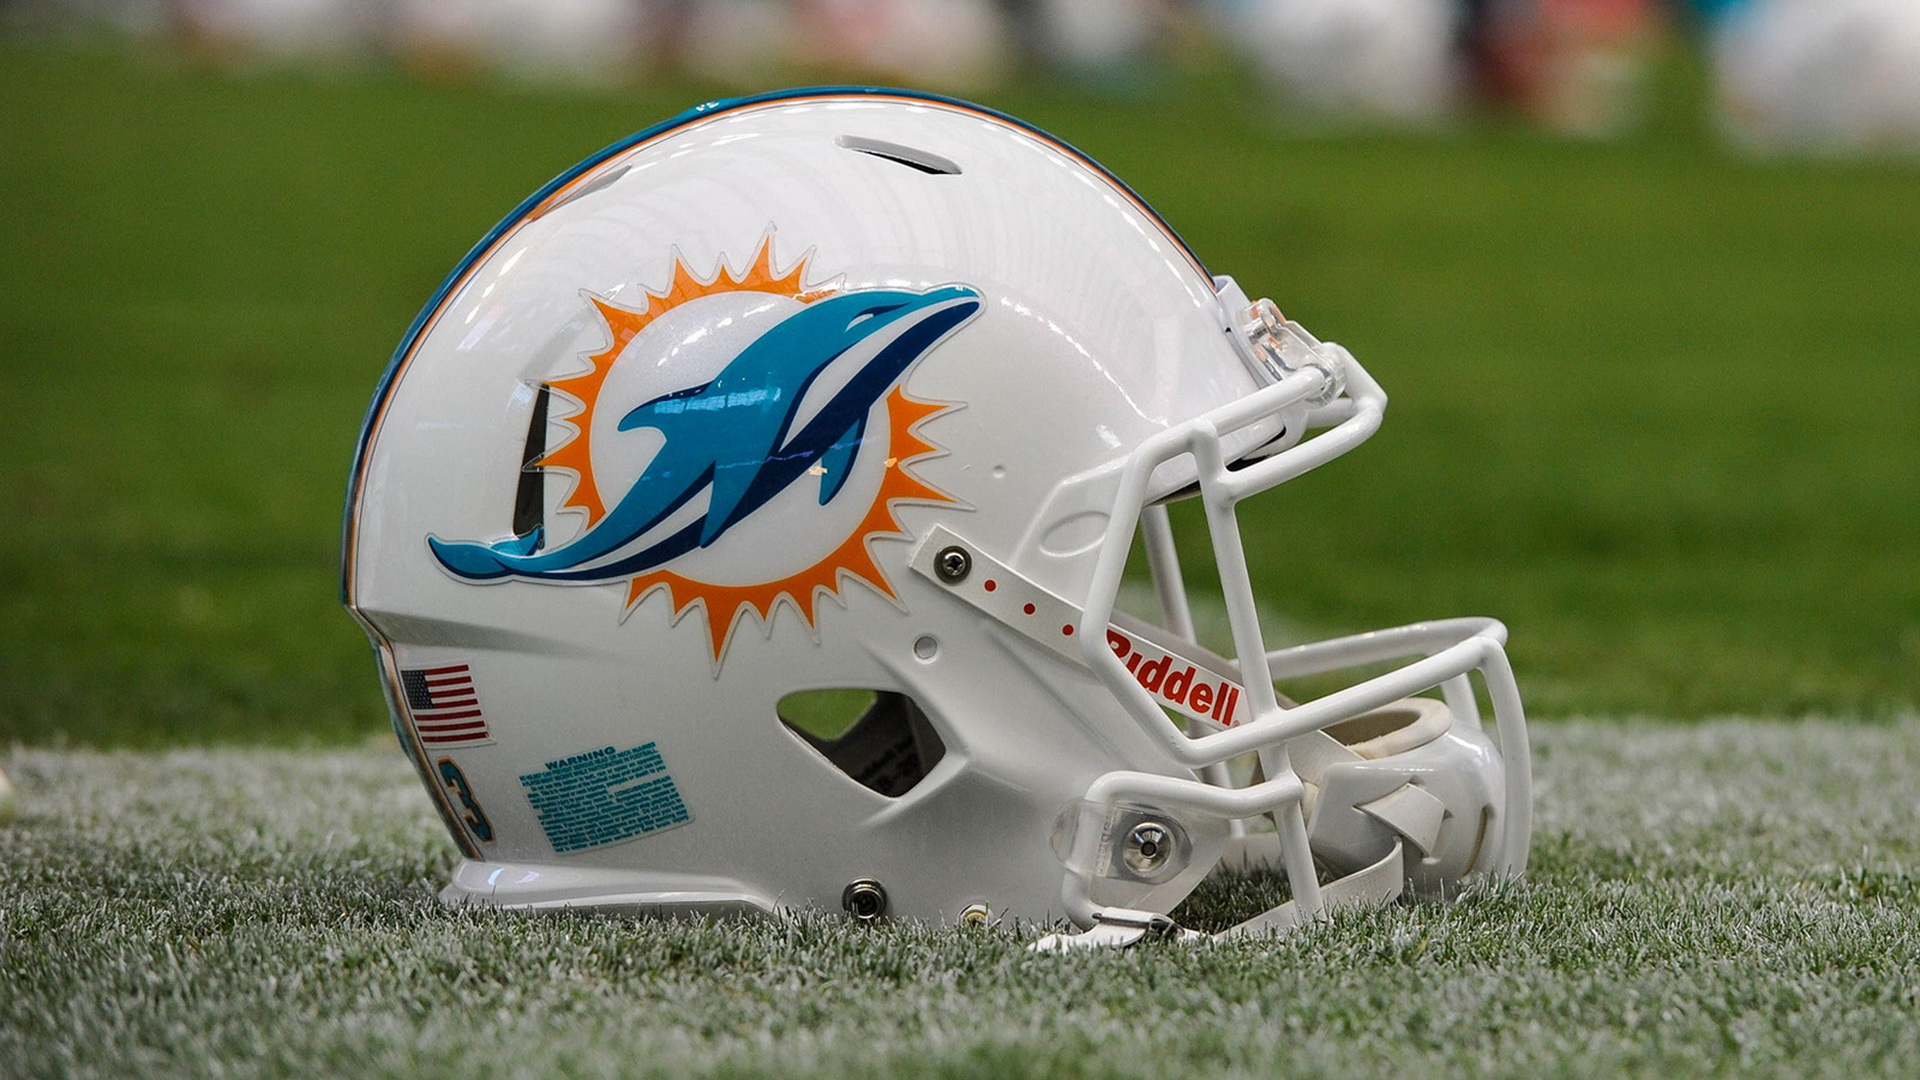 Miami Dolphins wallpaper for pc